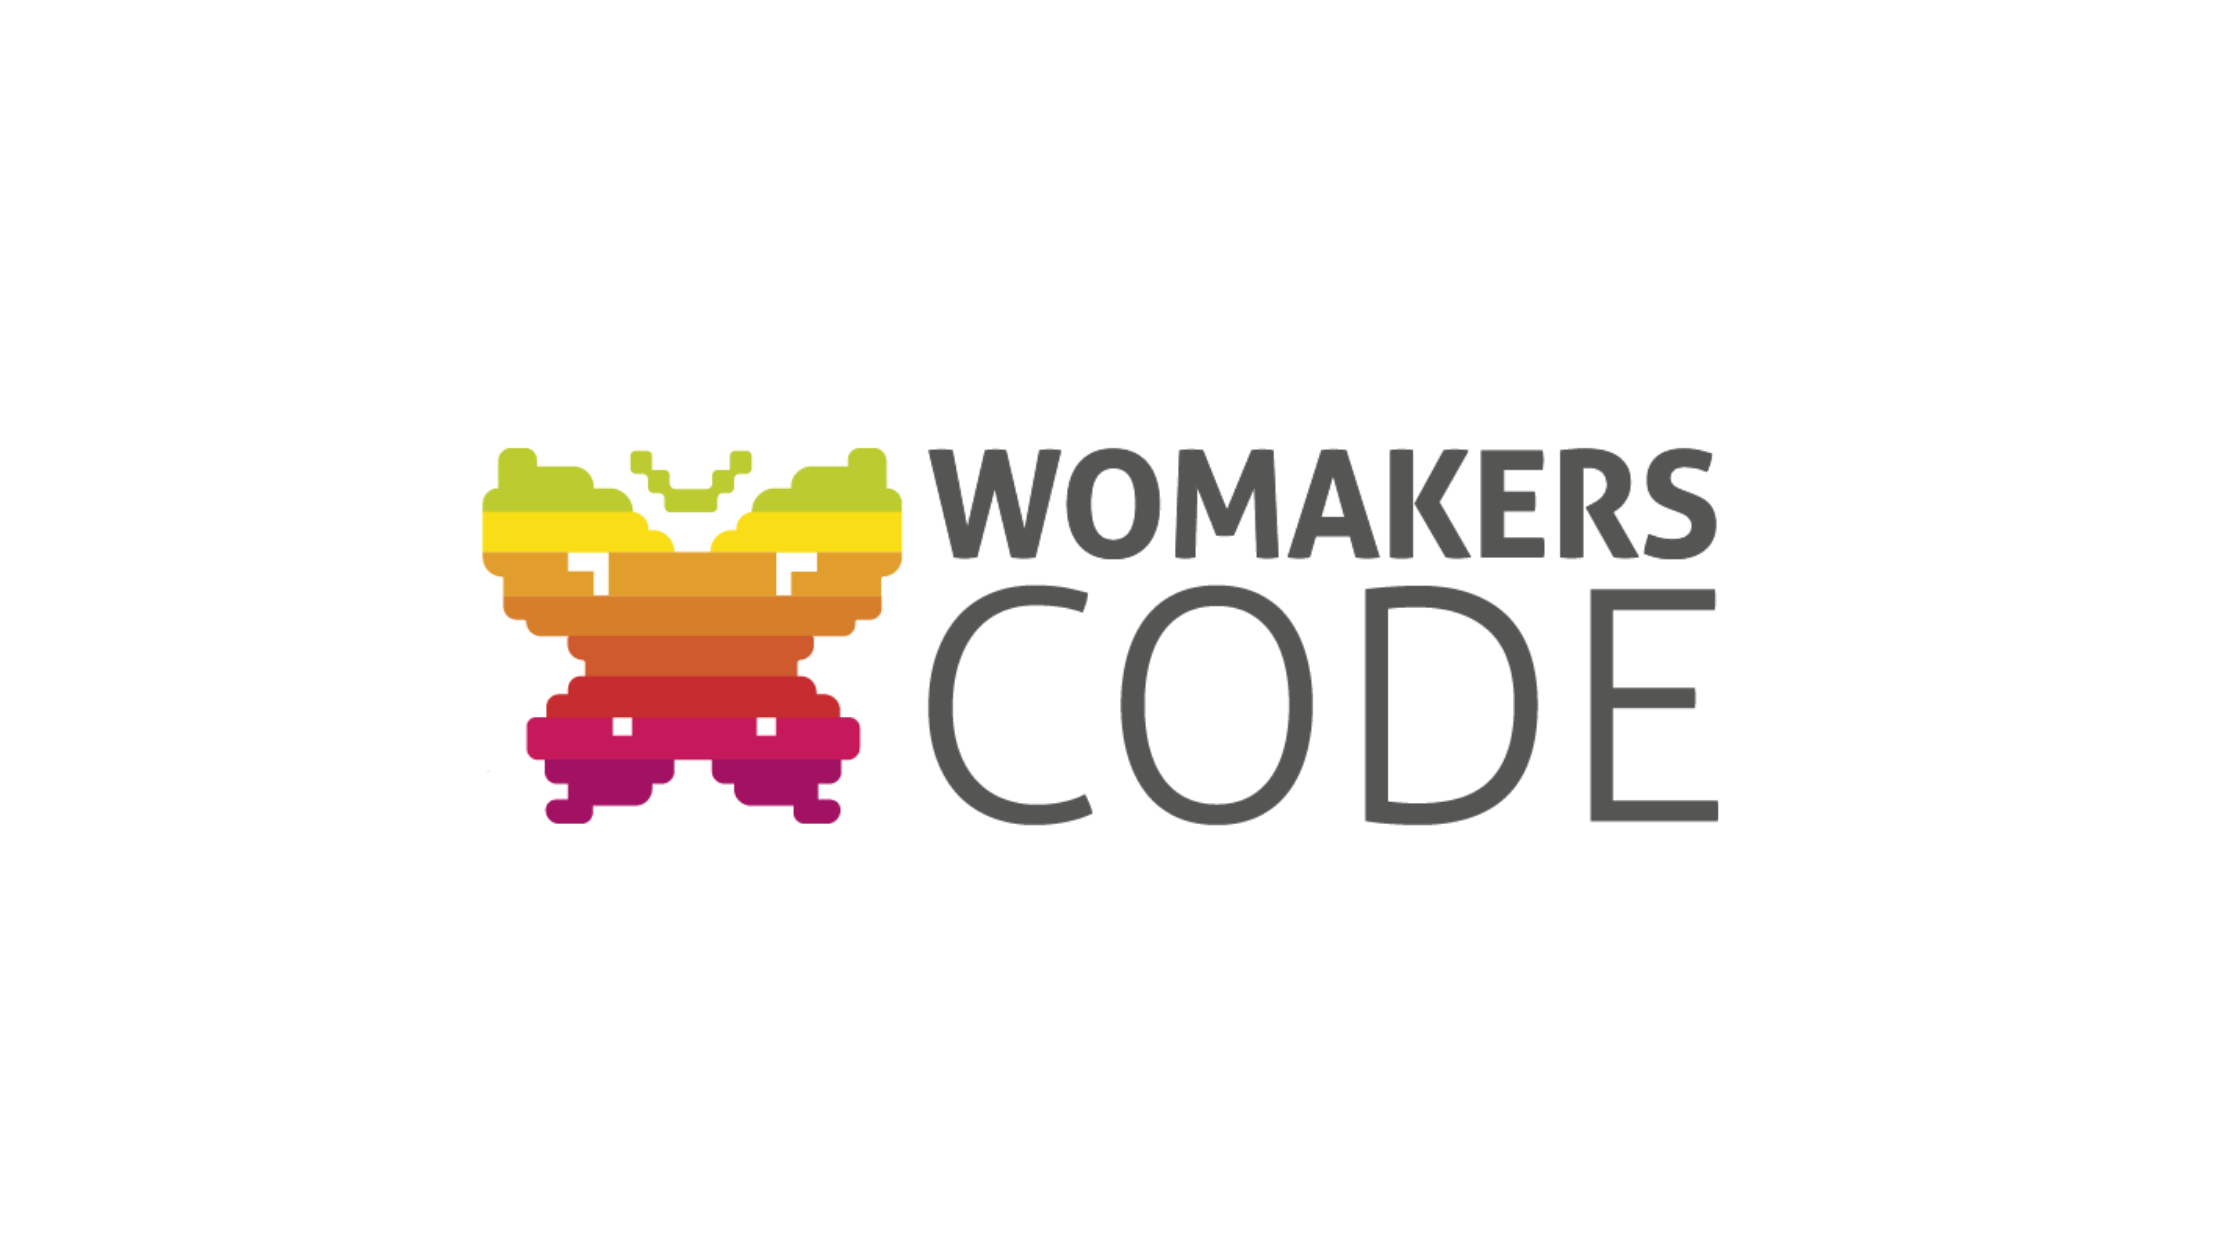 Womakers Code